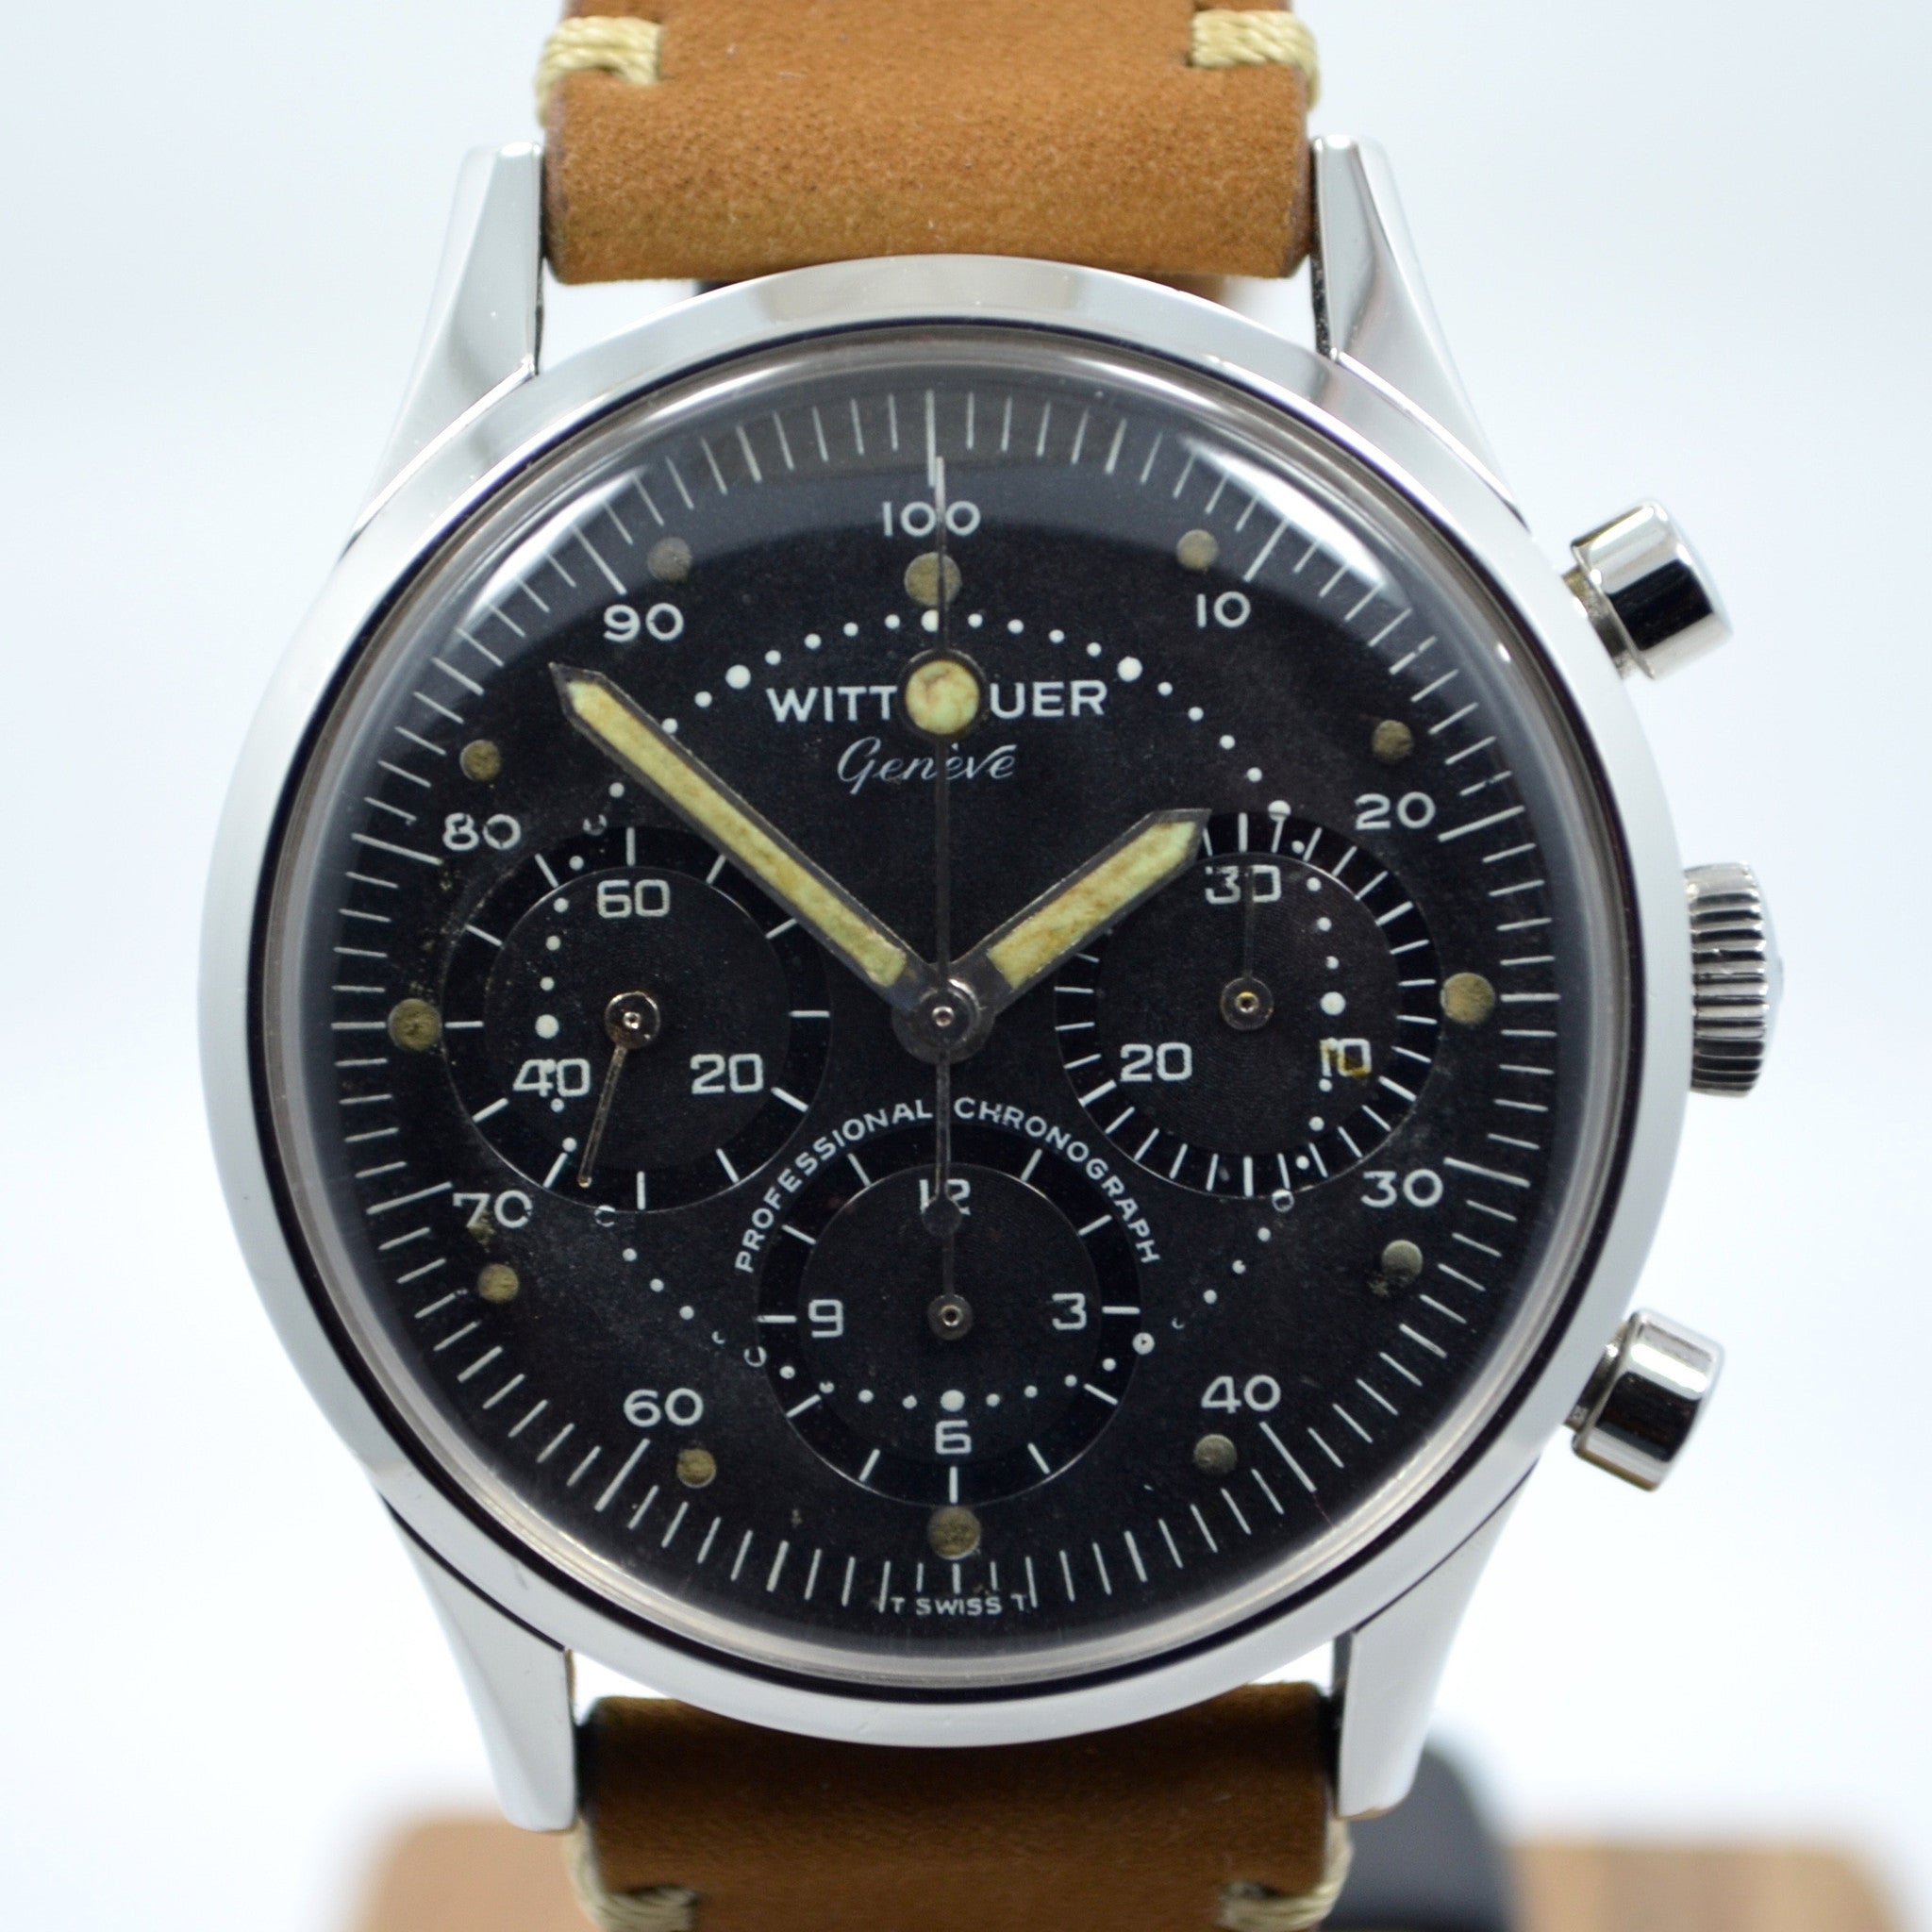 Vintage Wittnauer Professional Chronograph Steel Valjoux 72 Manual Wristwatch